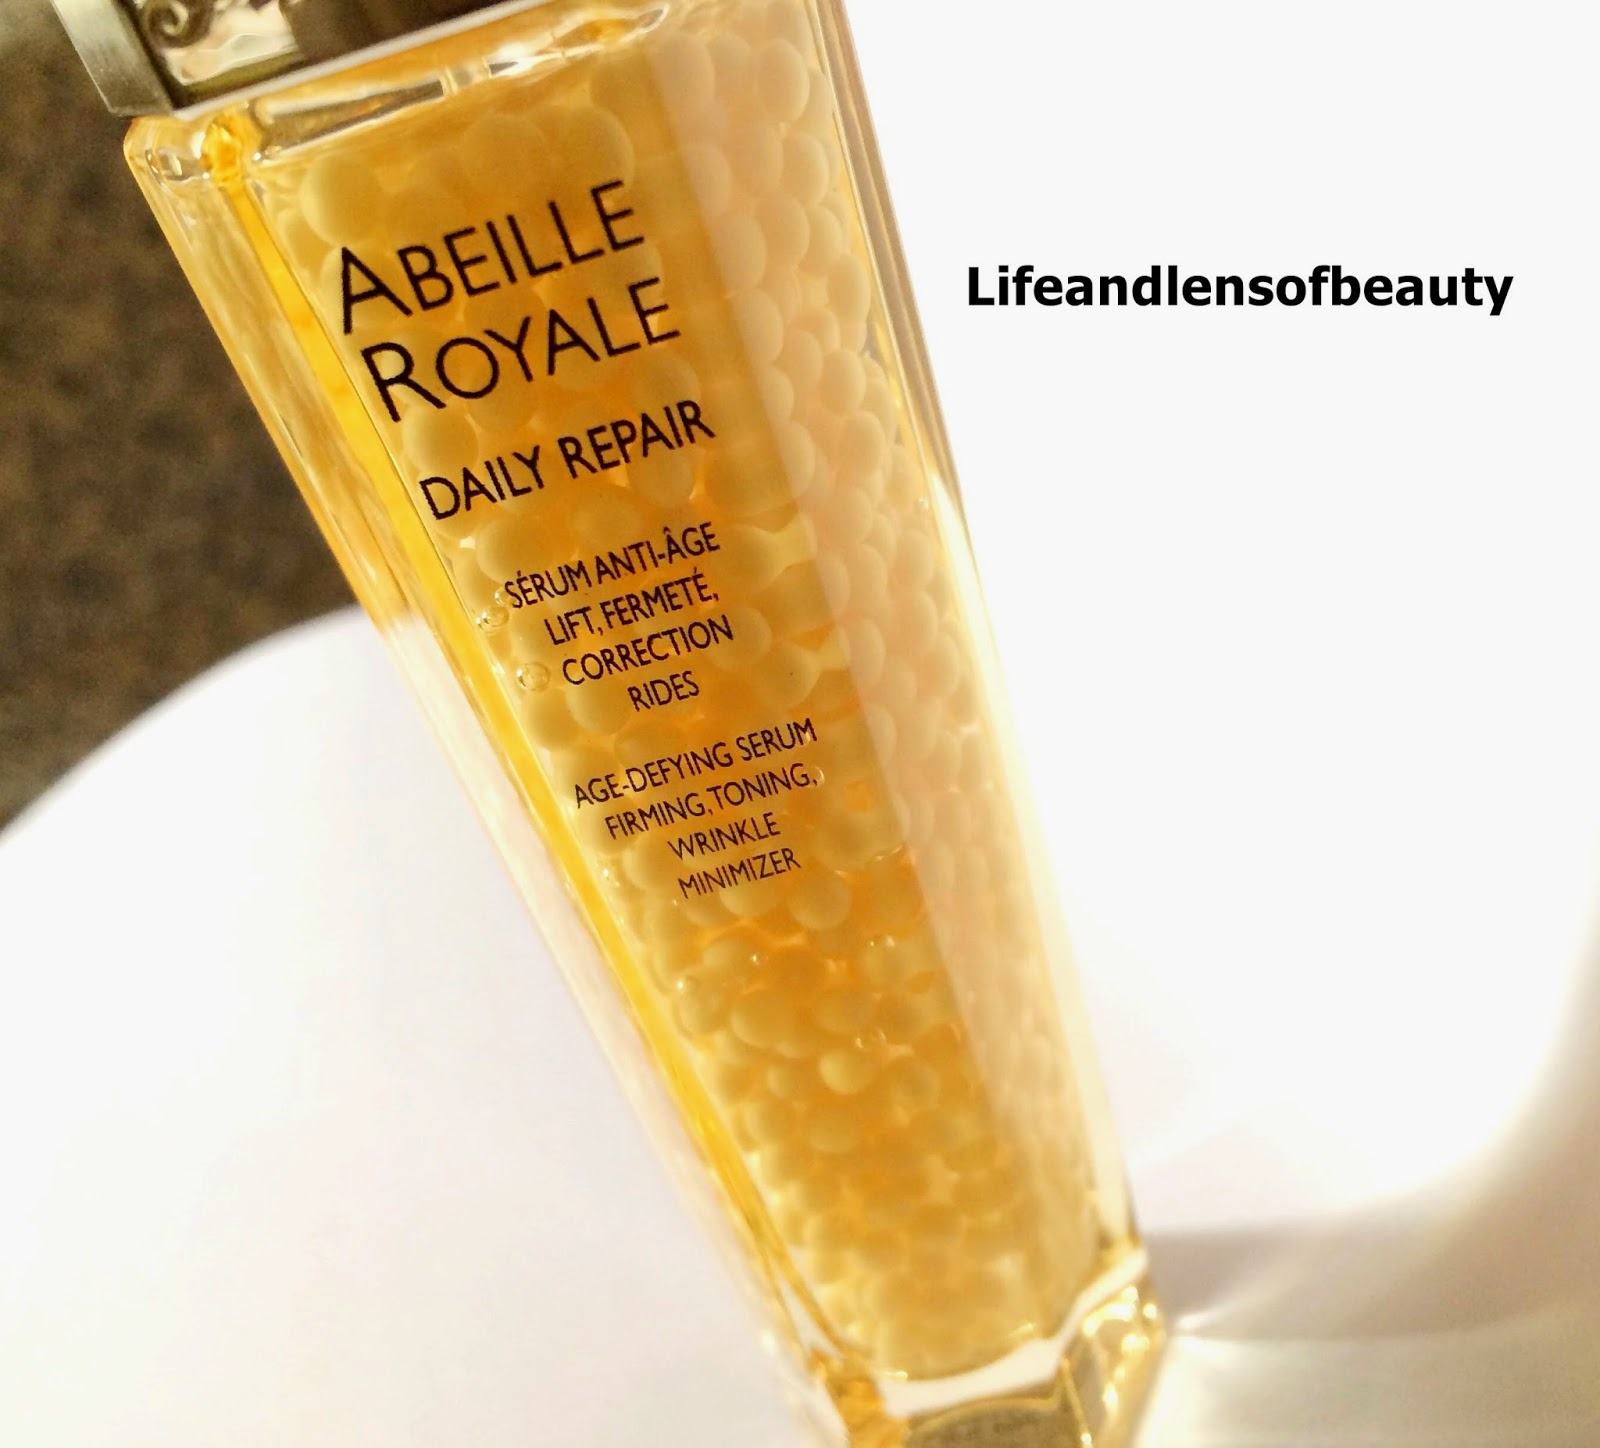 lifeandlensofbeauty guerlain abeille royale daily repair age defying serum review. Black Bedroom Furniture Sets. Home Design Ideas